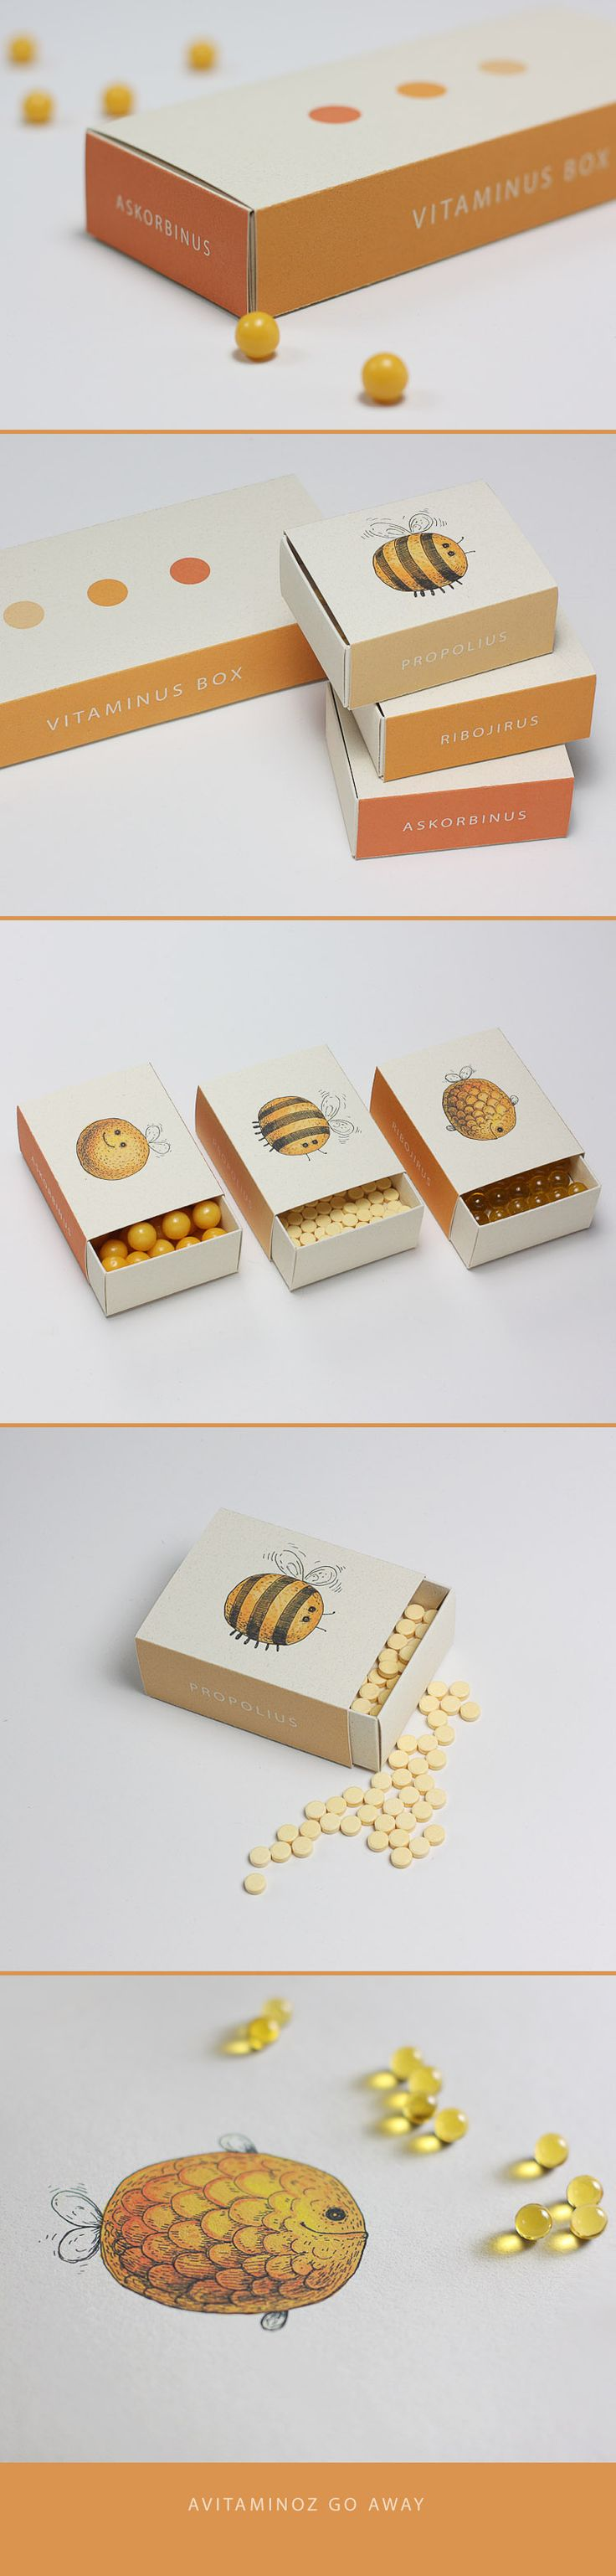 Vitaminus Box {packaging}